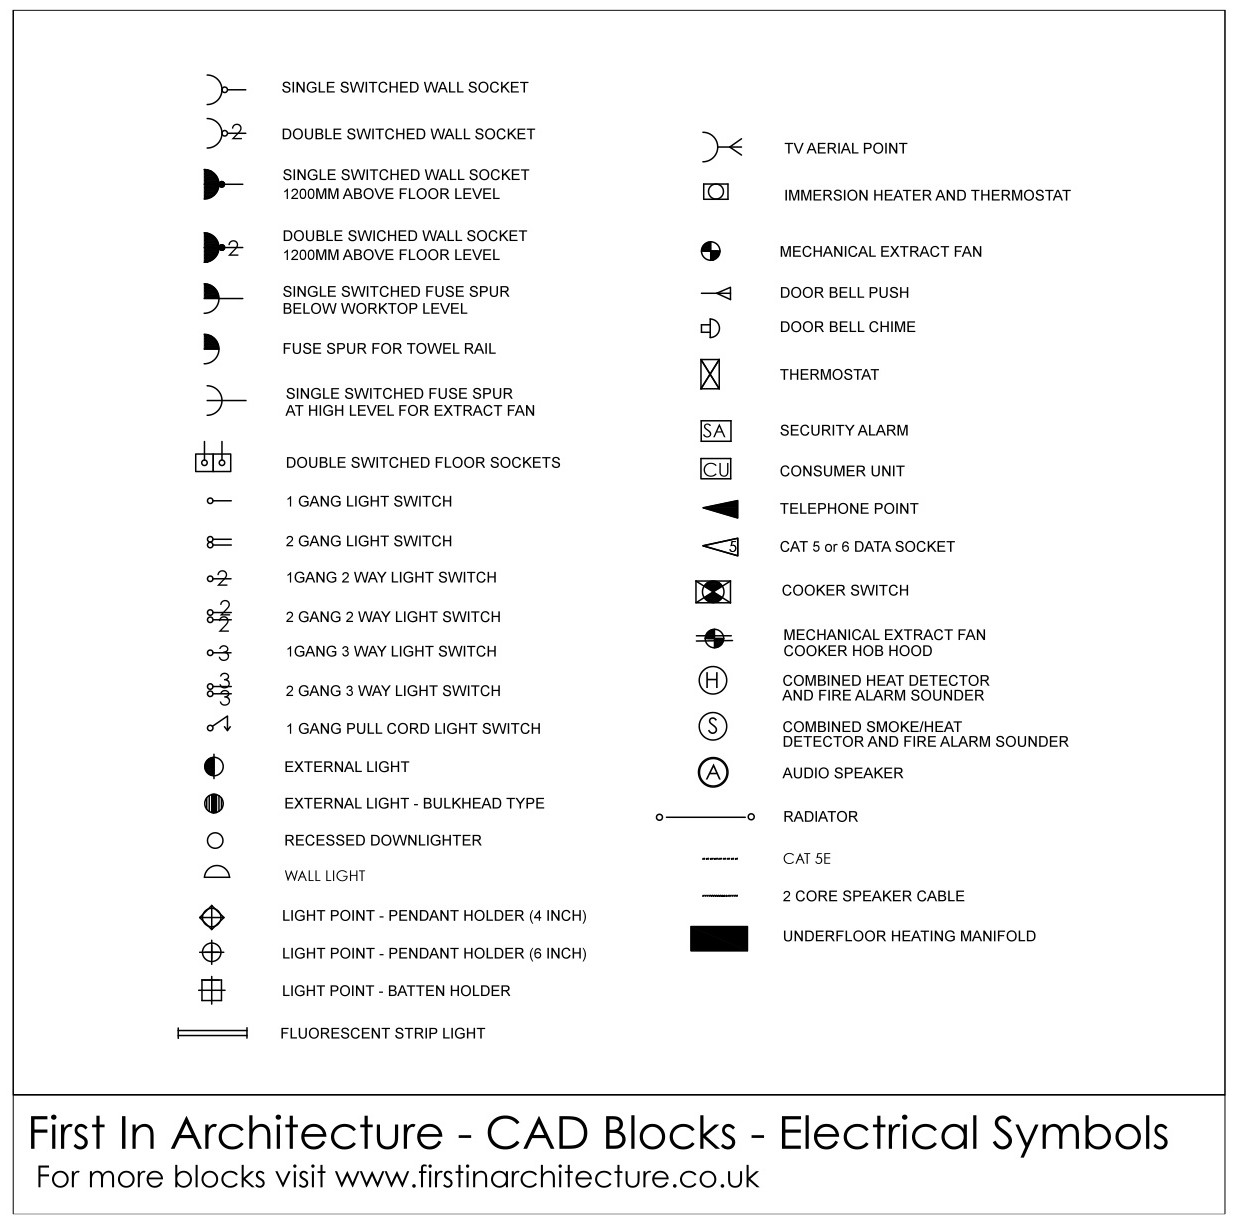 free cad blocks electrical symbols first in architecture rh firstinarchitecture co uk Basic Wiring Symbols Electrical Symbols Chart